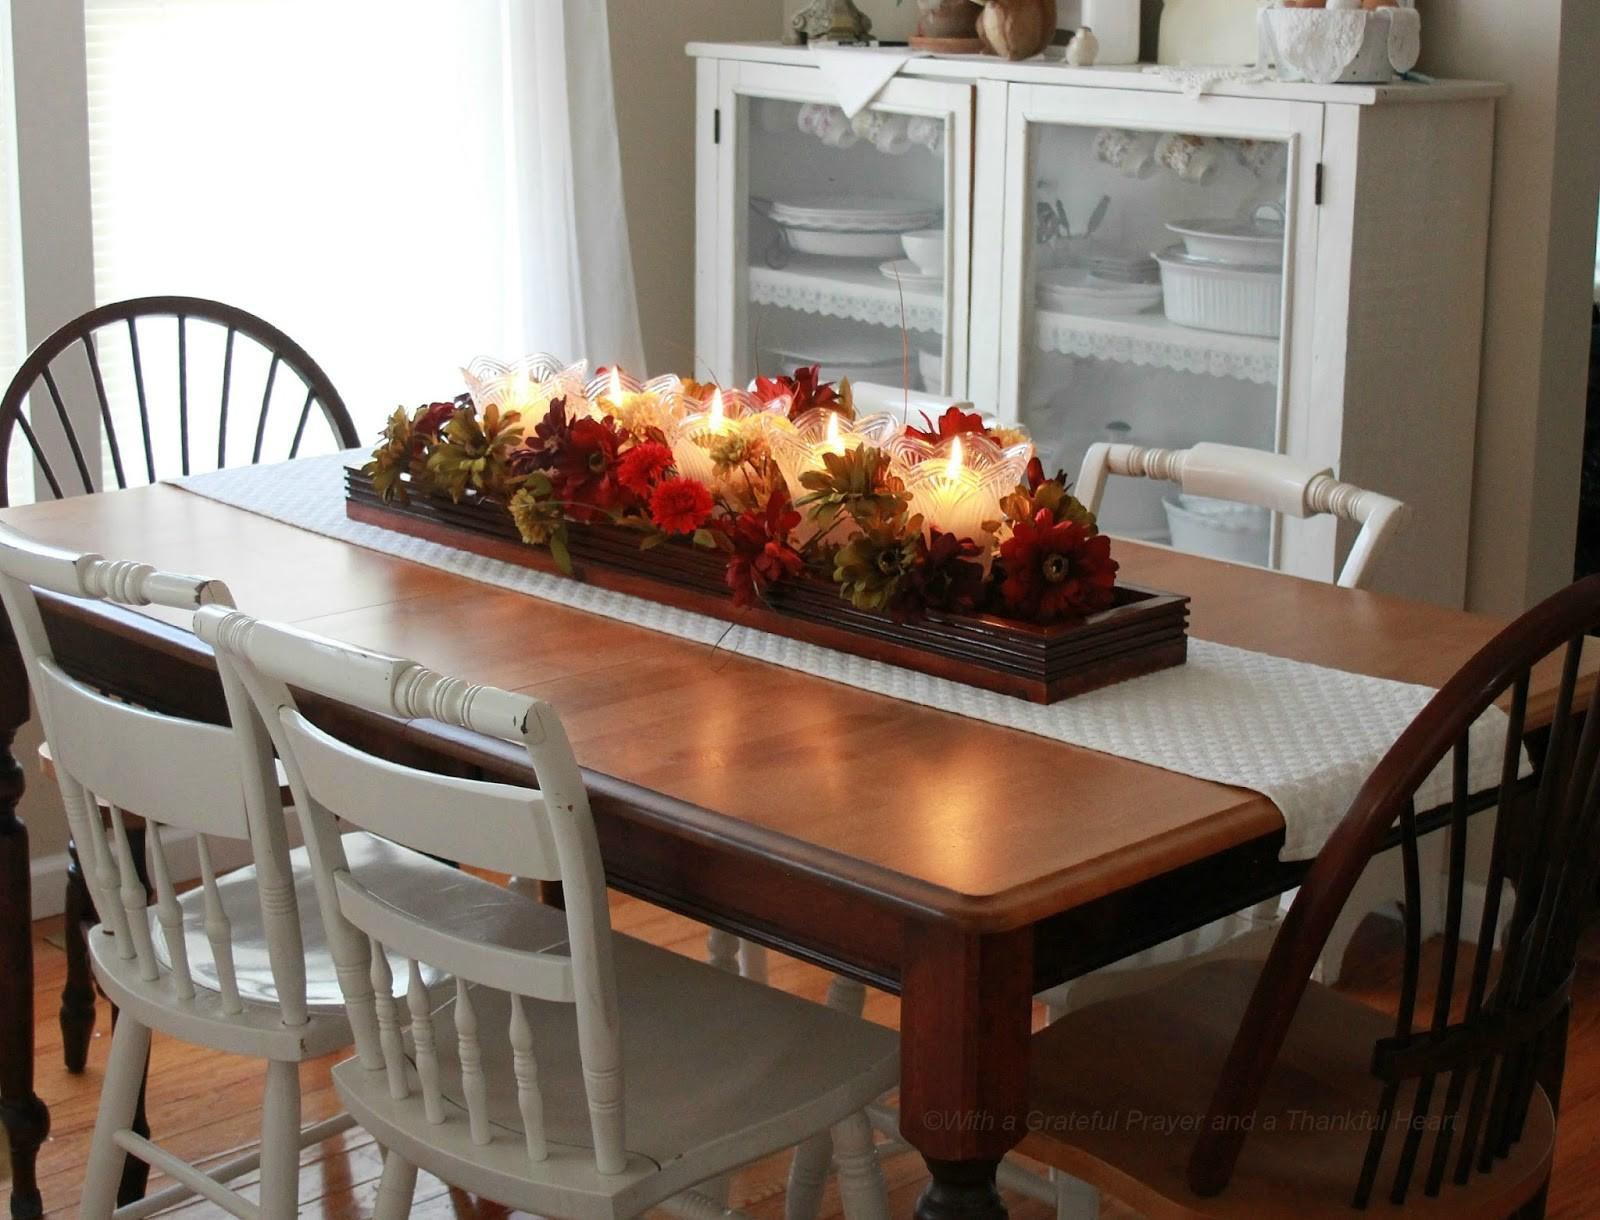 Practical Dining Table Centerpiece Ideas That Make A Big Difference For 2021 Photo Gallery Decoratorist